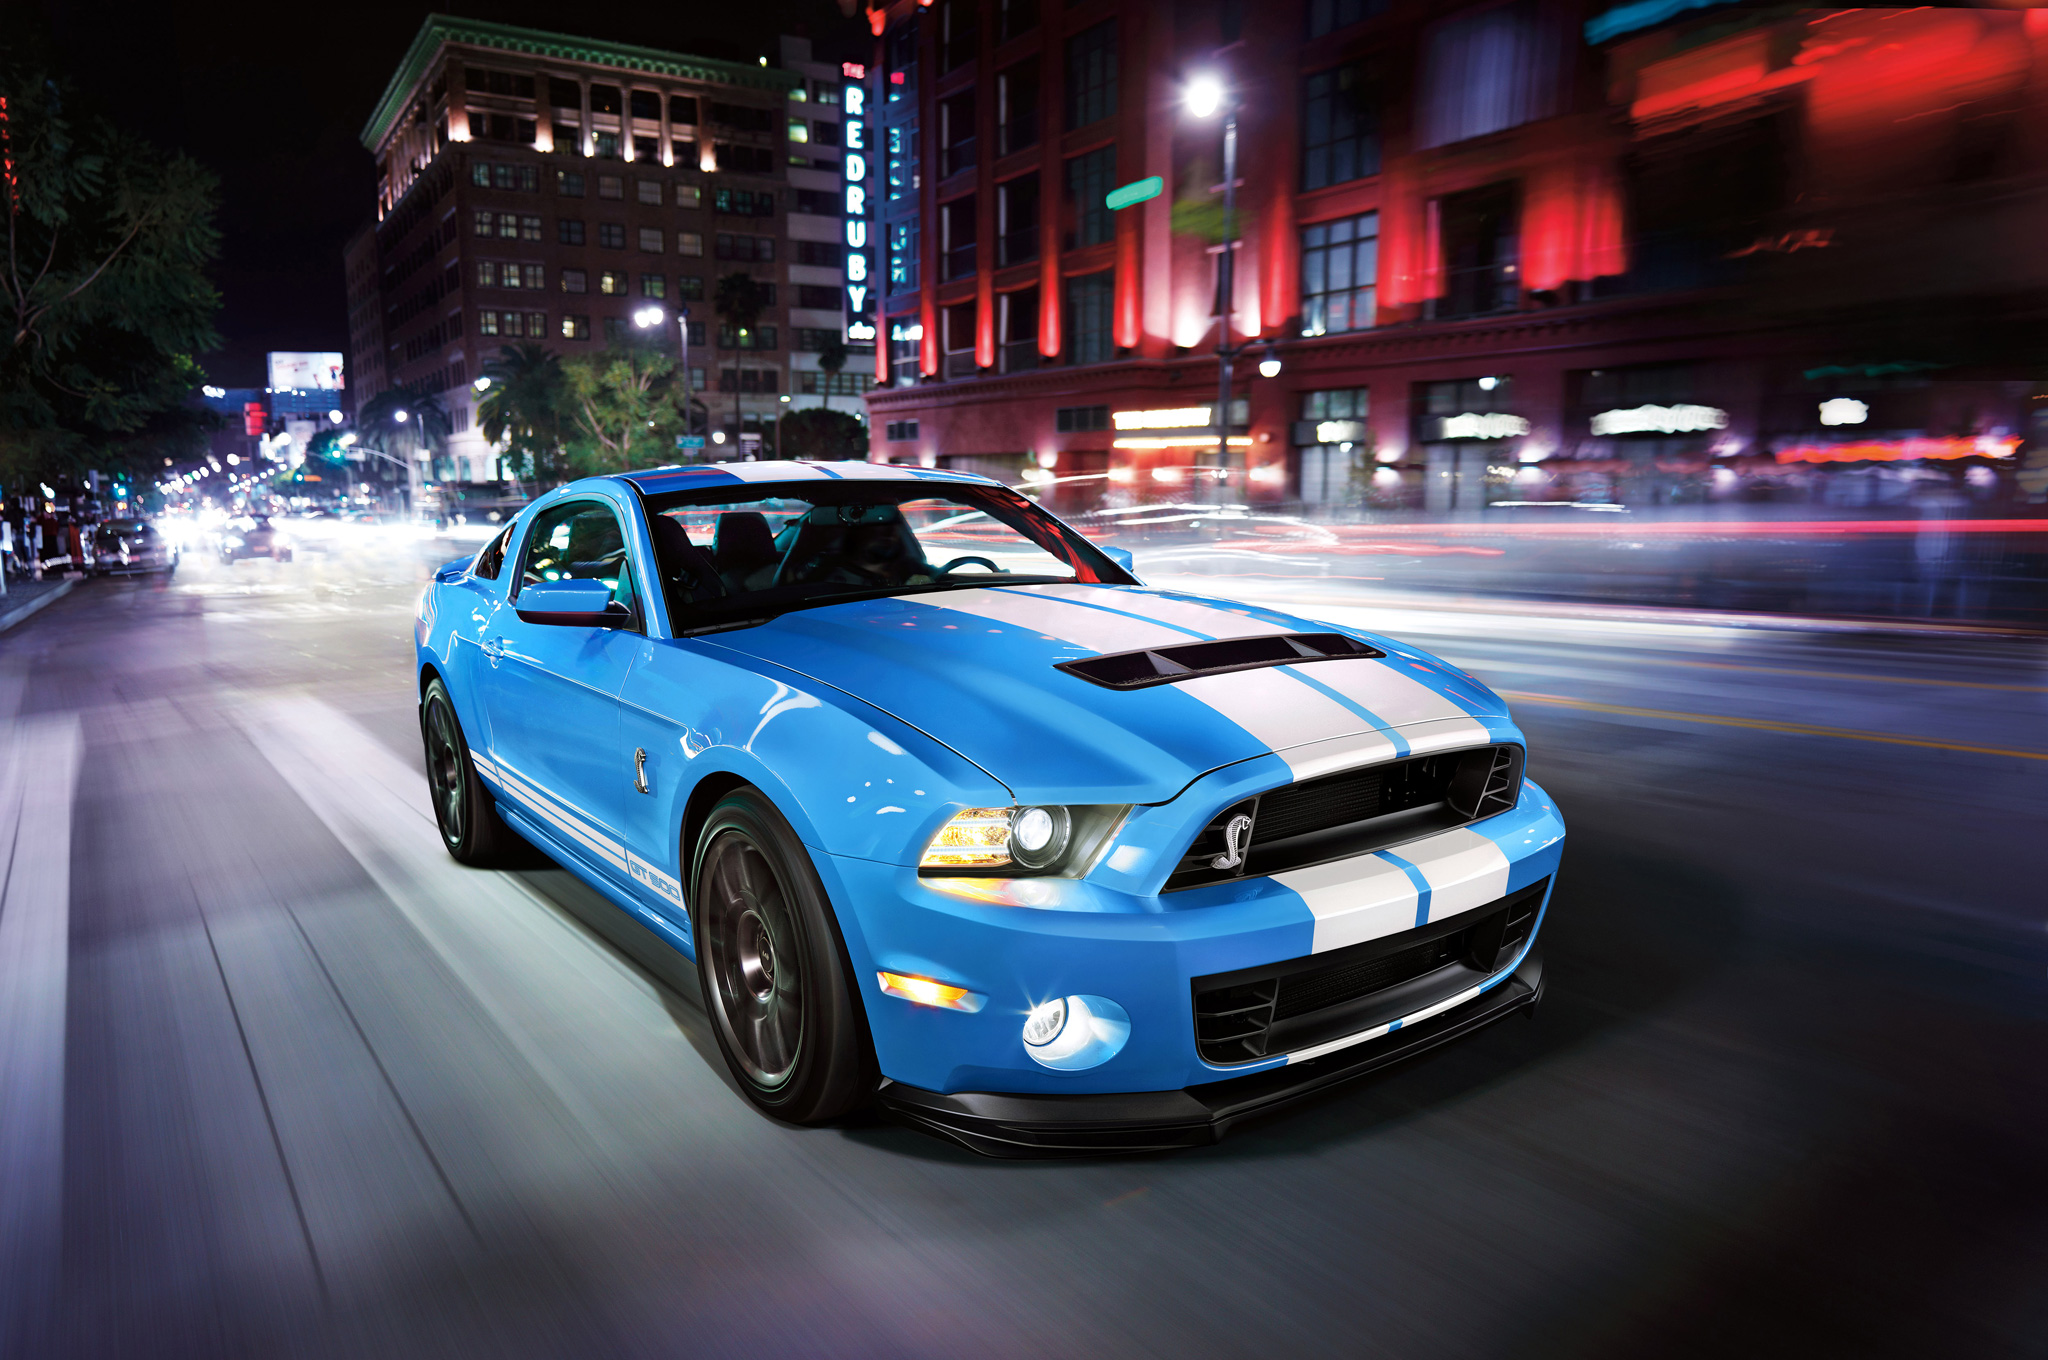 2014 Ford Shelby Gt500 #16